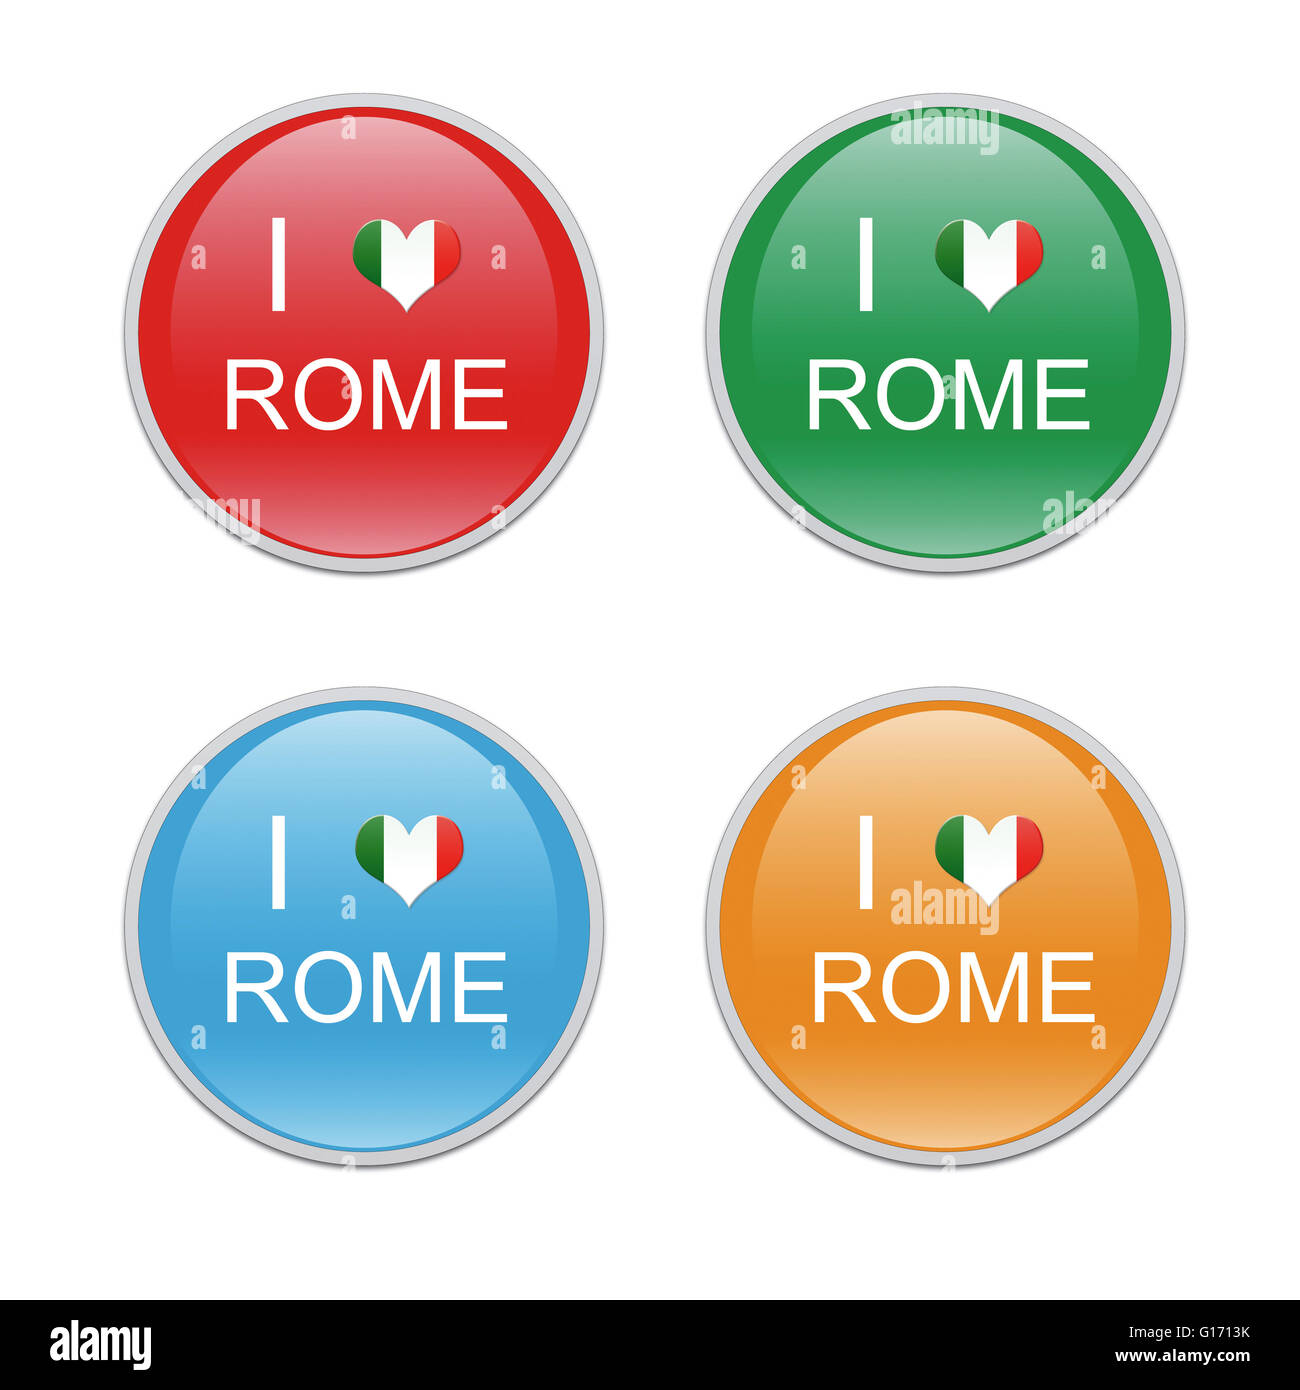 Icons to symbolize i love rome in red green blue and orange icons to symbolize i love rome in red green blue and orange colors biocorpaavc Images